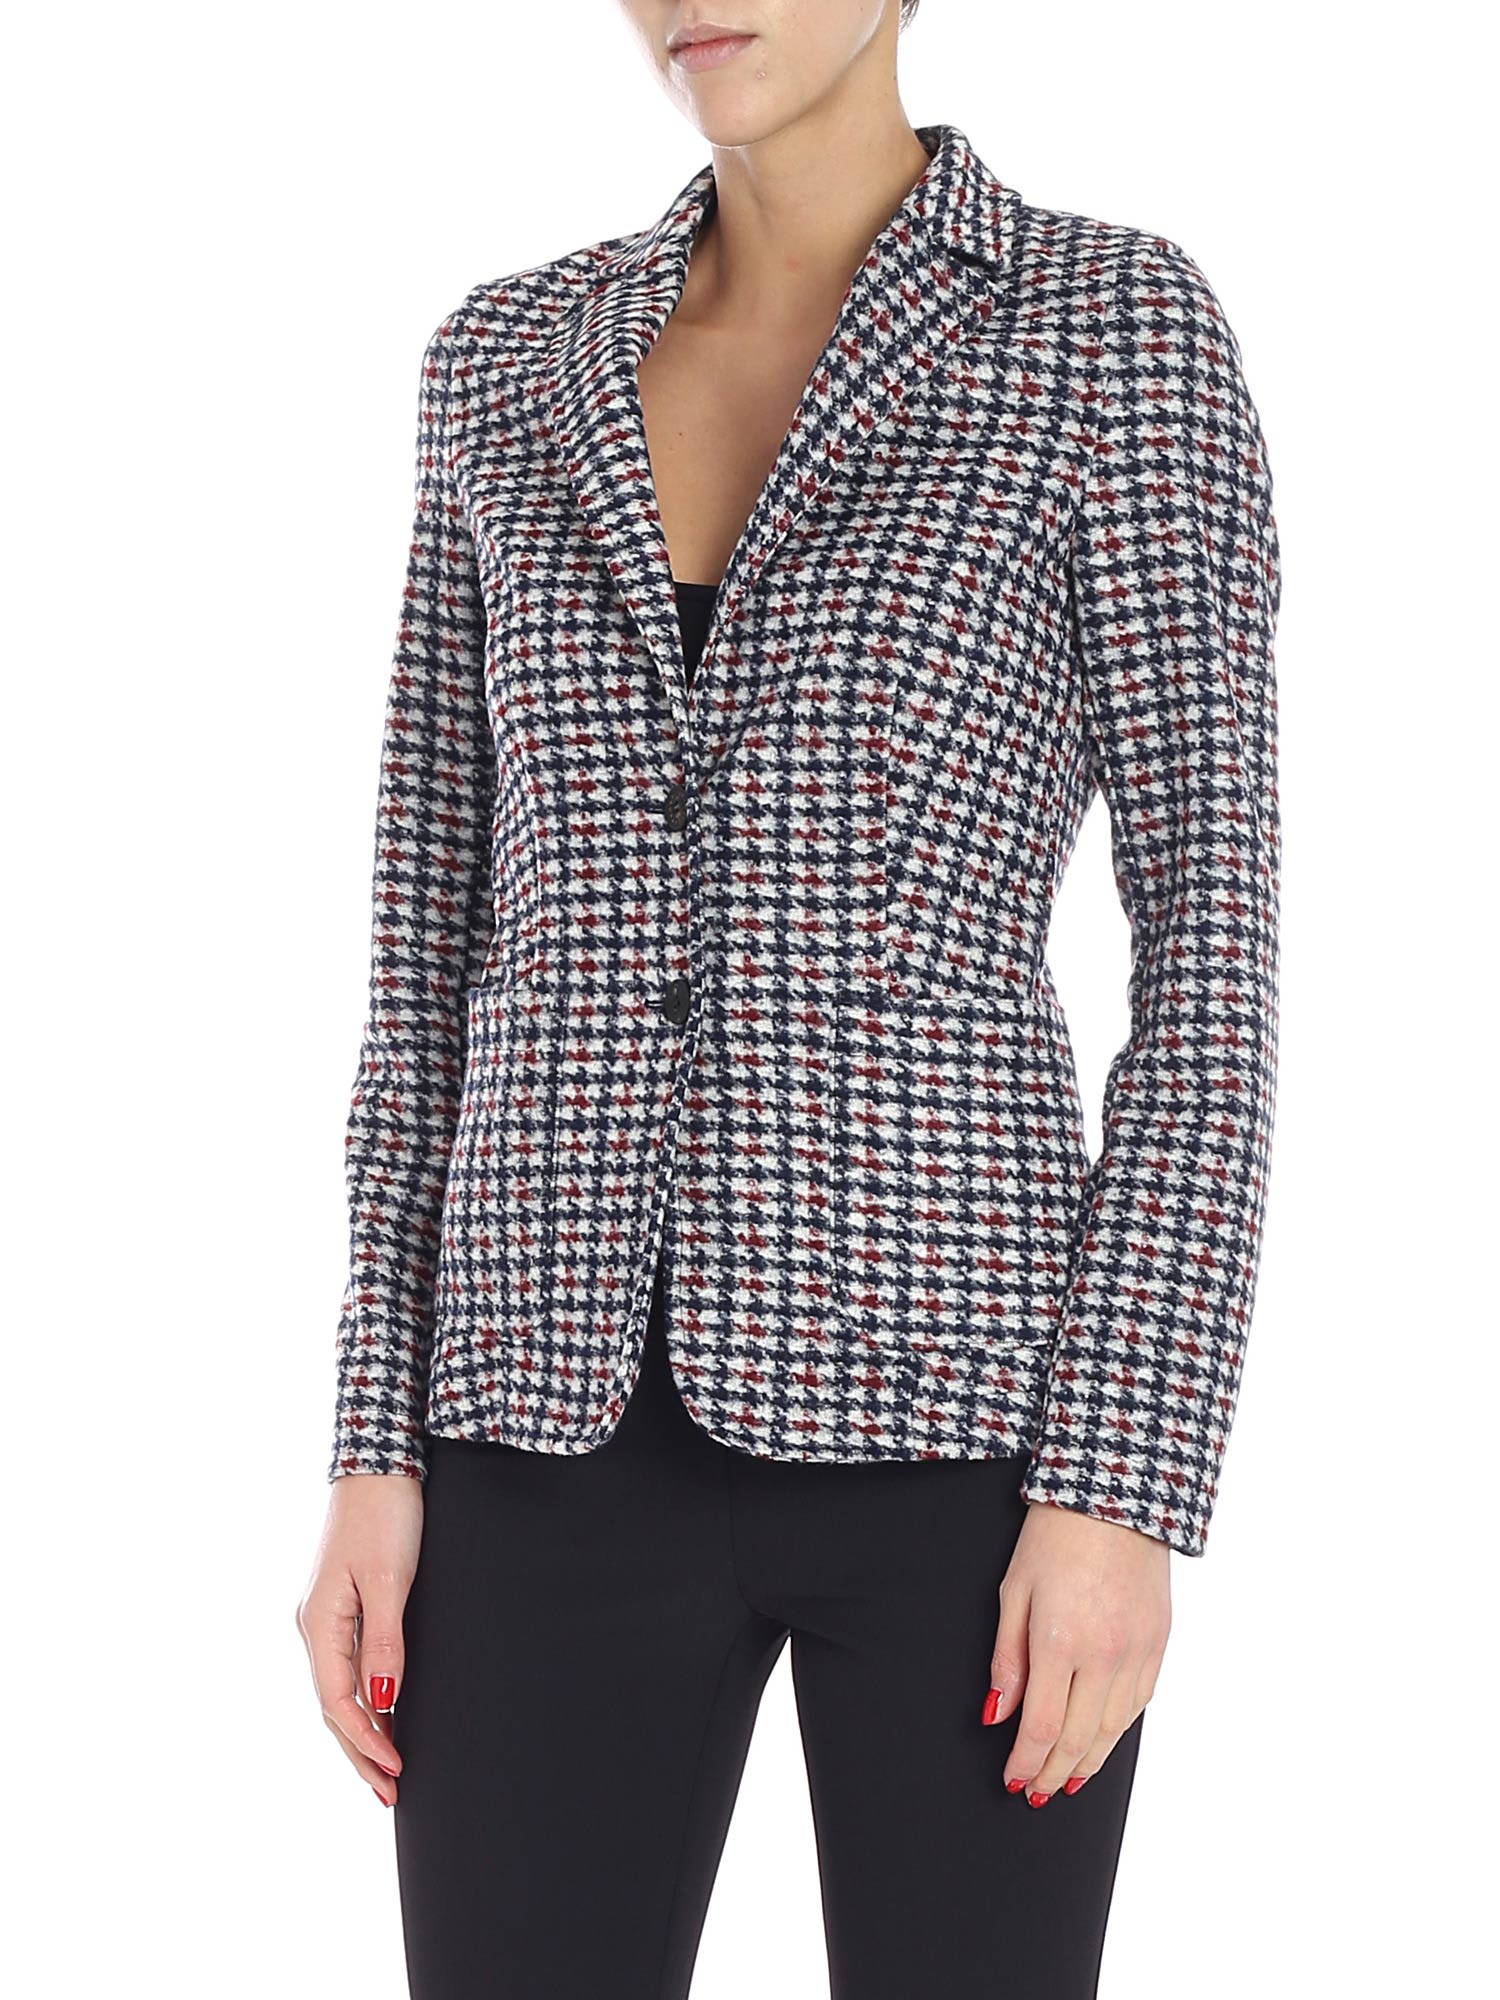 T-jacket – Giacca